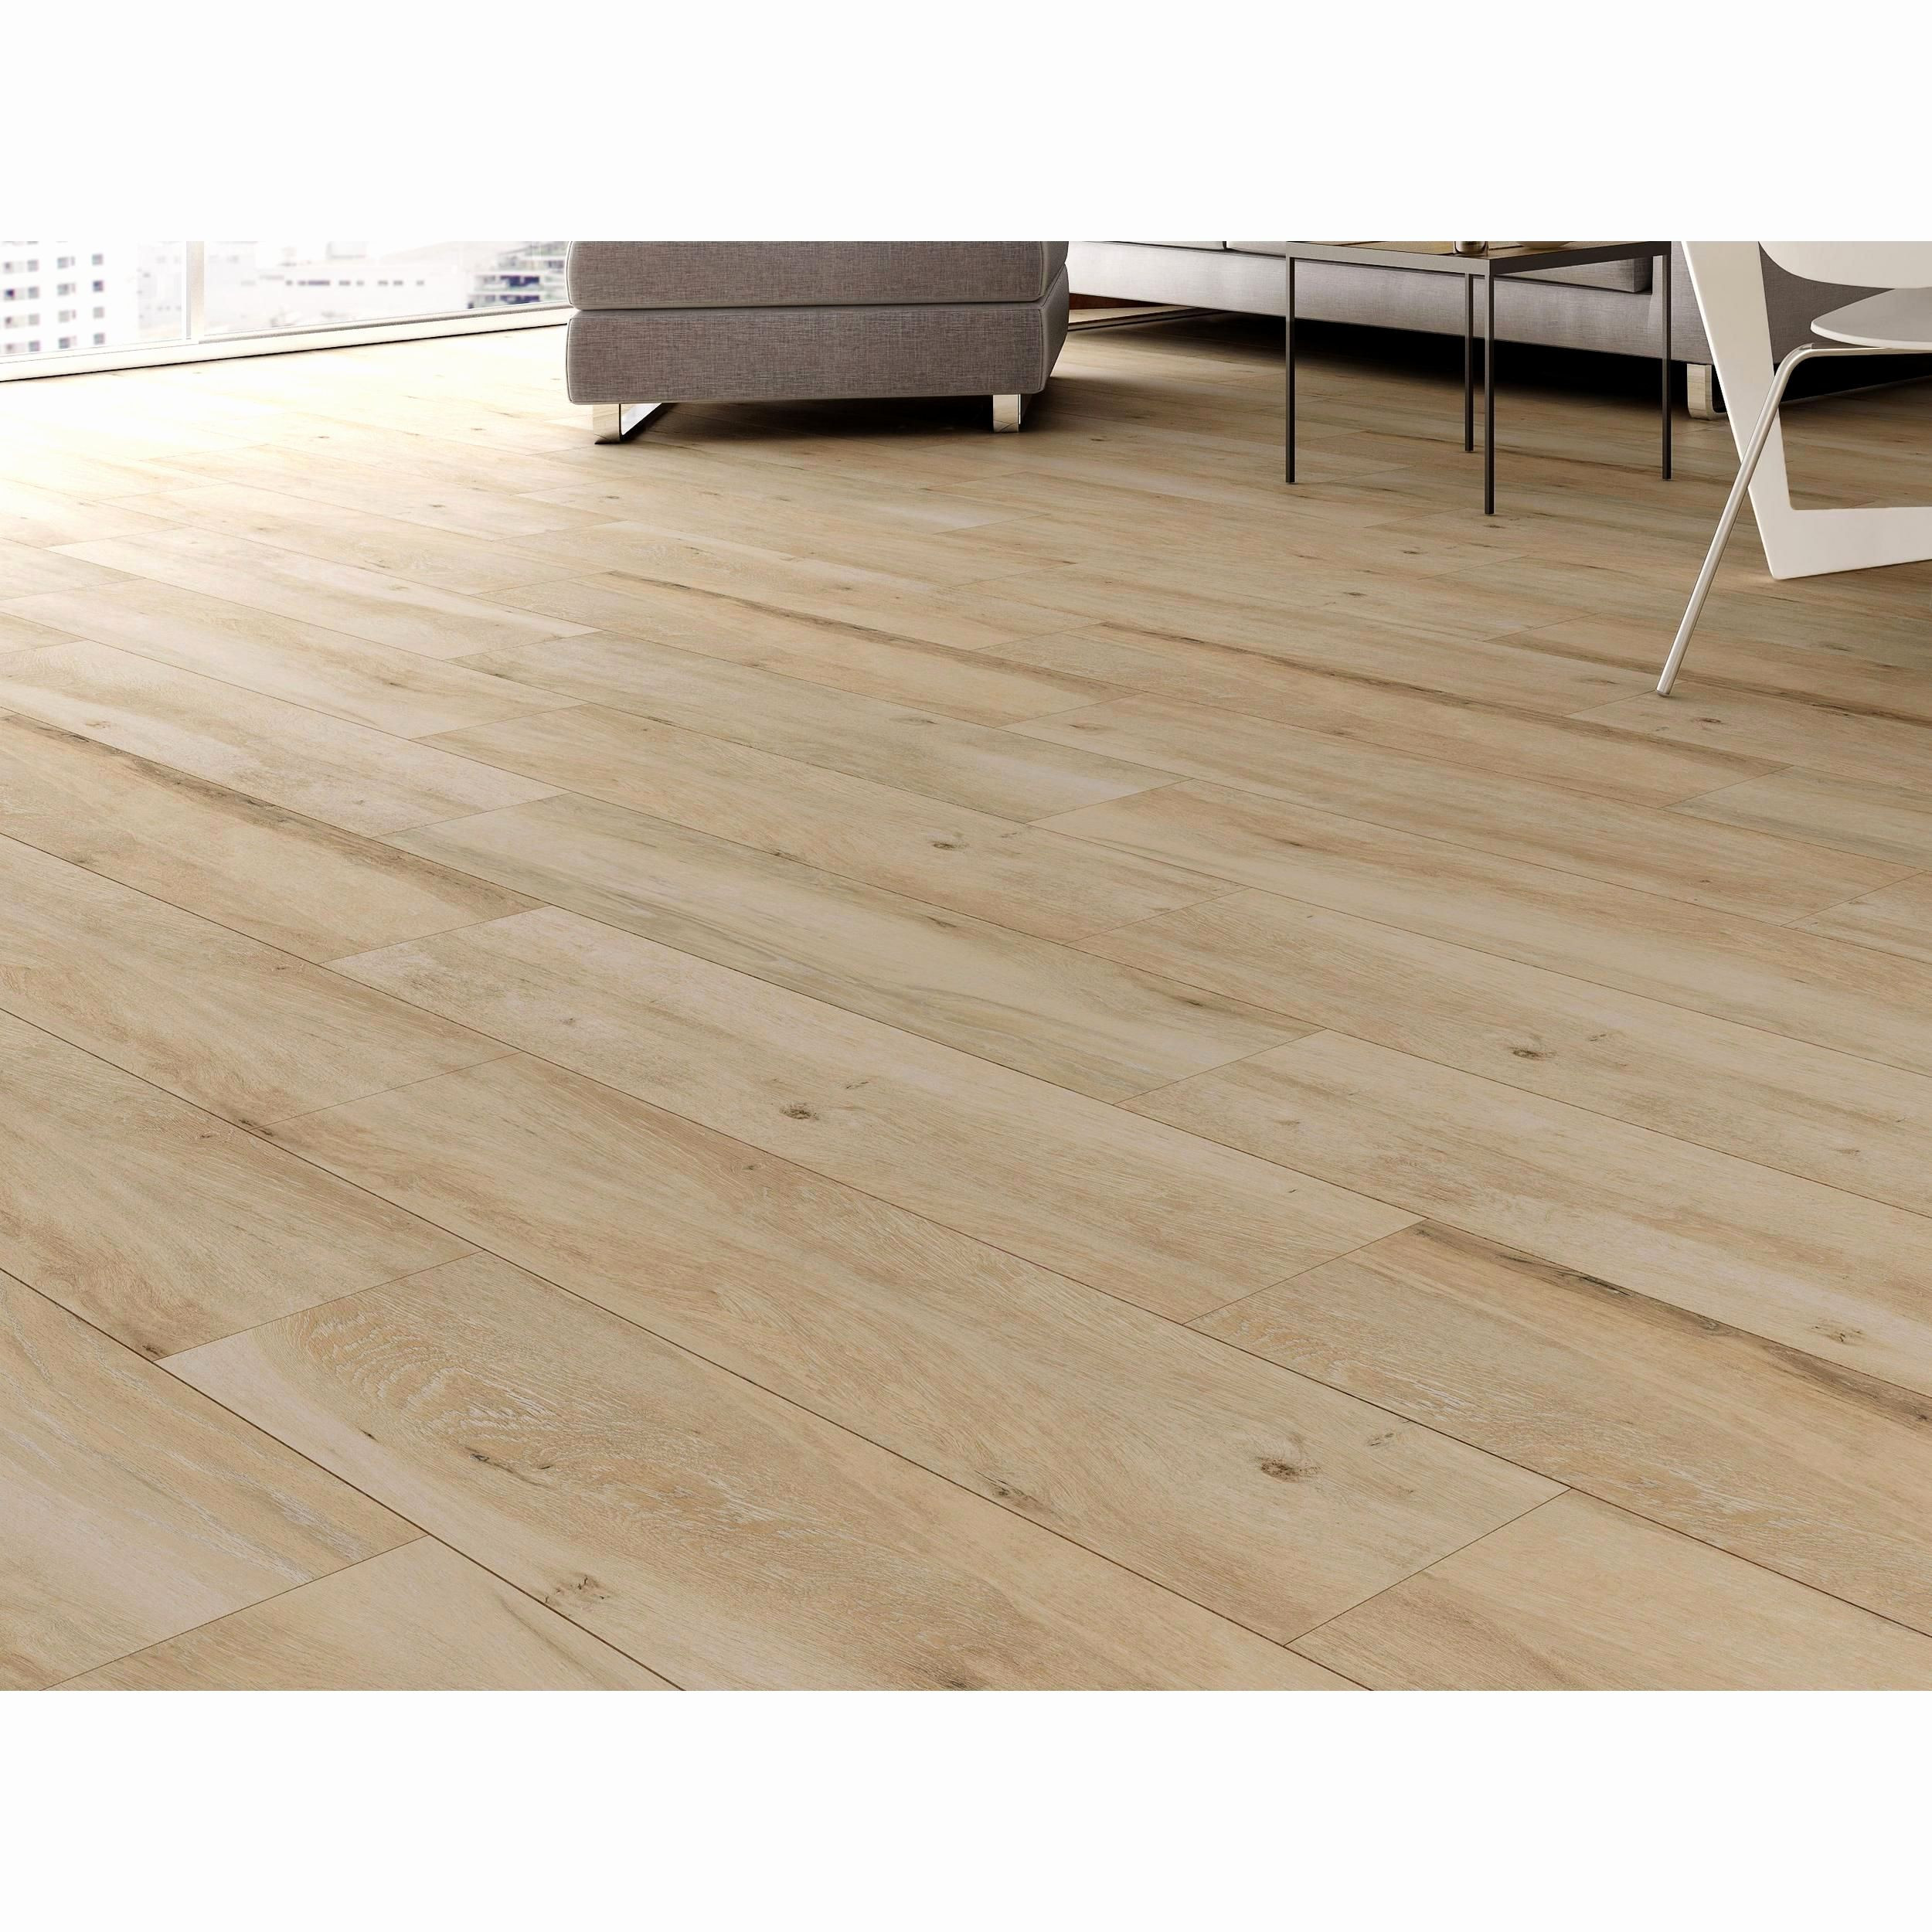 prefinished hardwood flooring price per square foot installed of cost install hardwood floors engineered wood float install cost in fresh estimated cost installing hardwood floors inspiration of hardwood flooring cost per sq ft